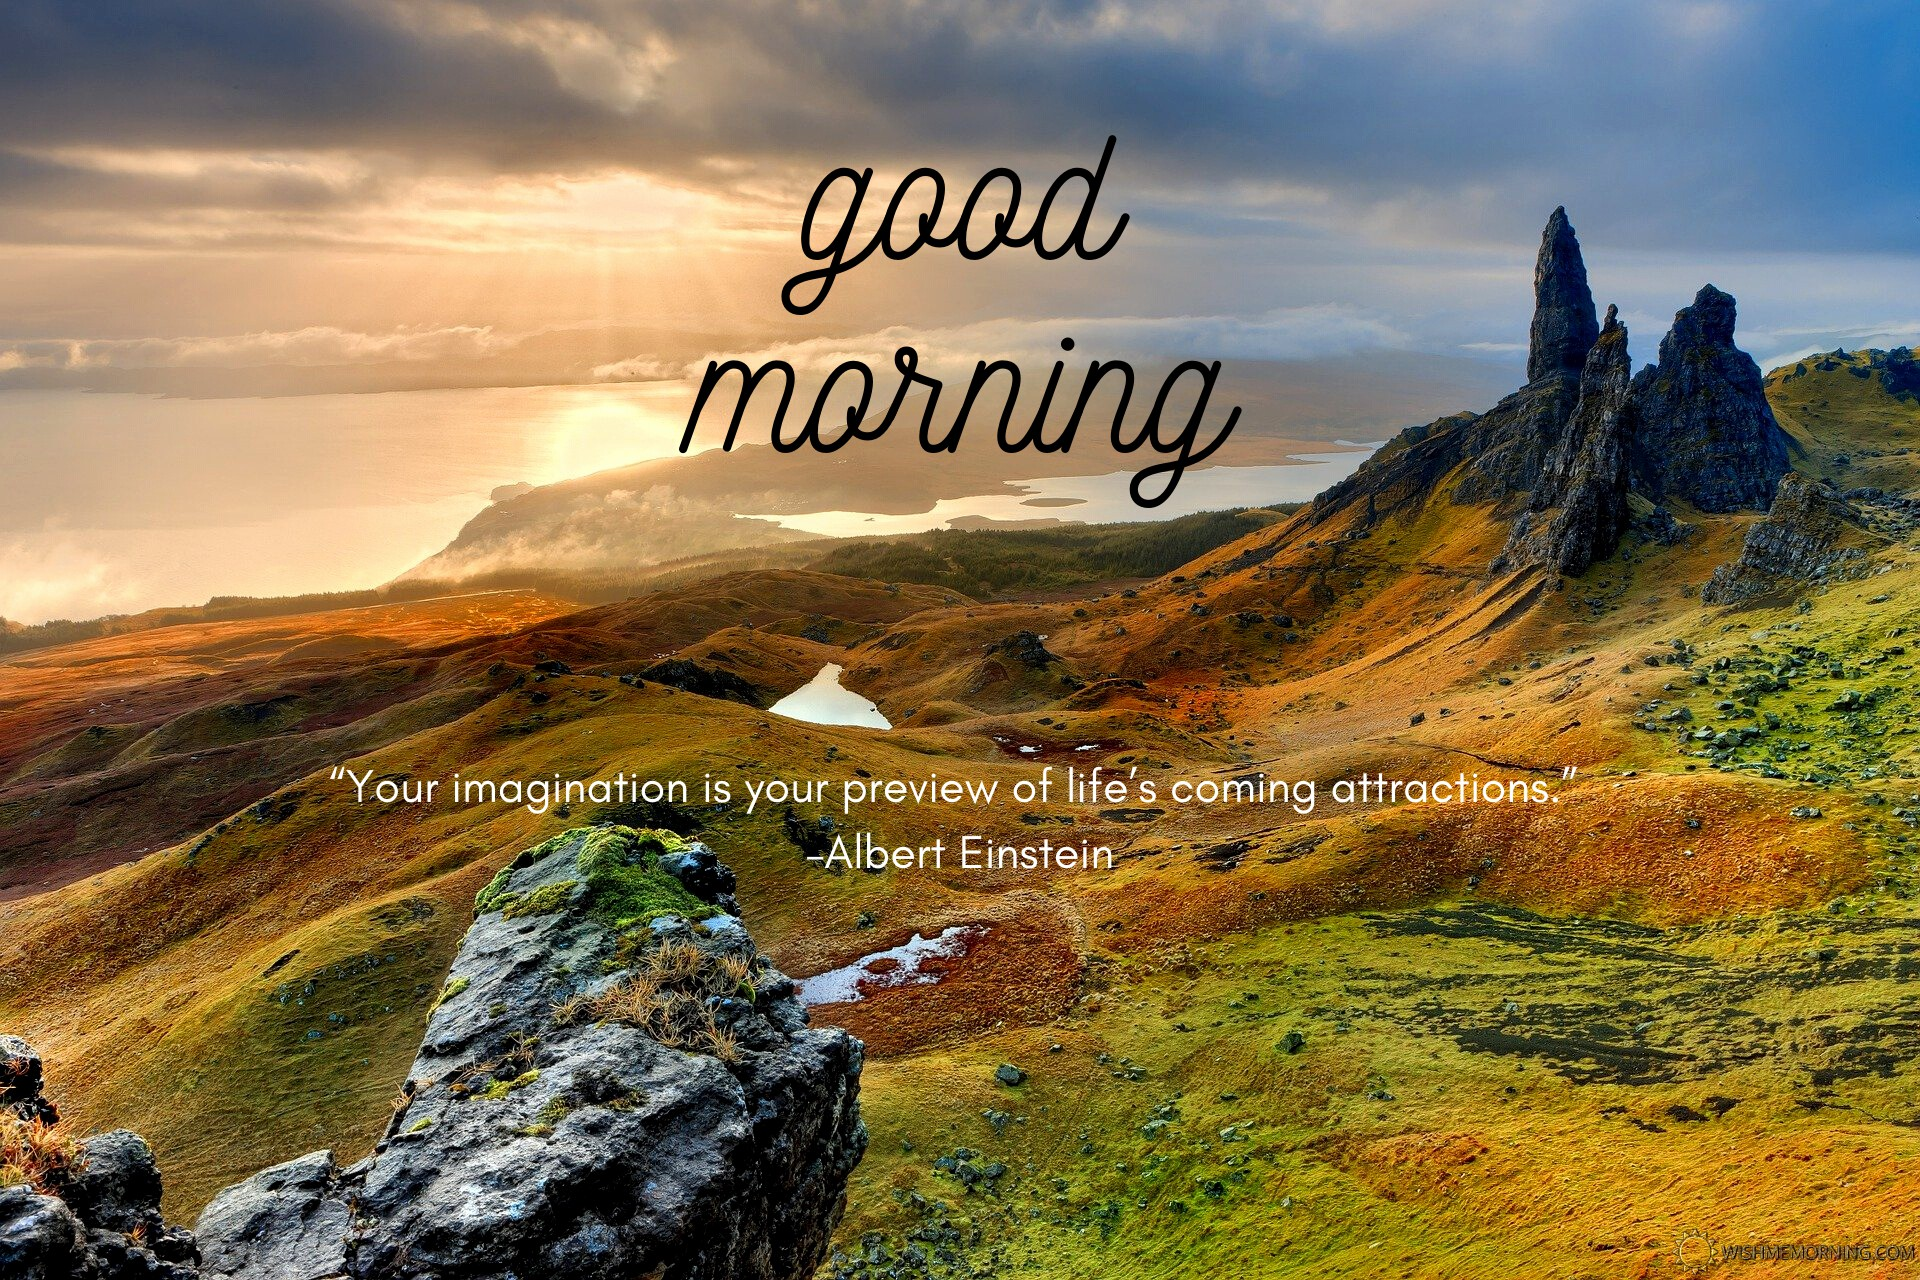 Green Yellow Valley Mountain Rocks Cloudy Sky Good Morning Wishes Image Quotes